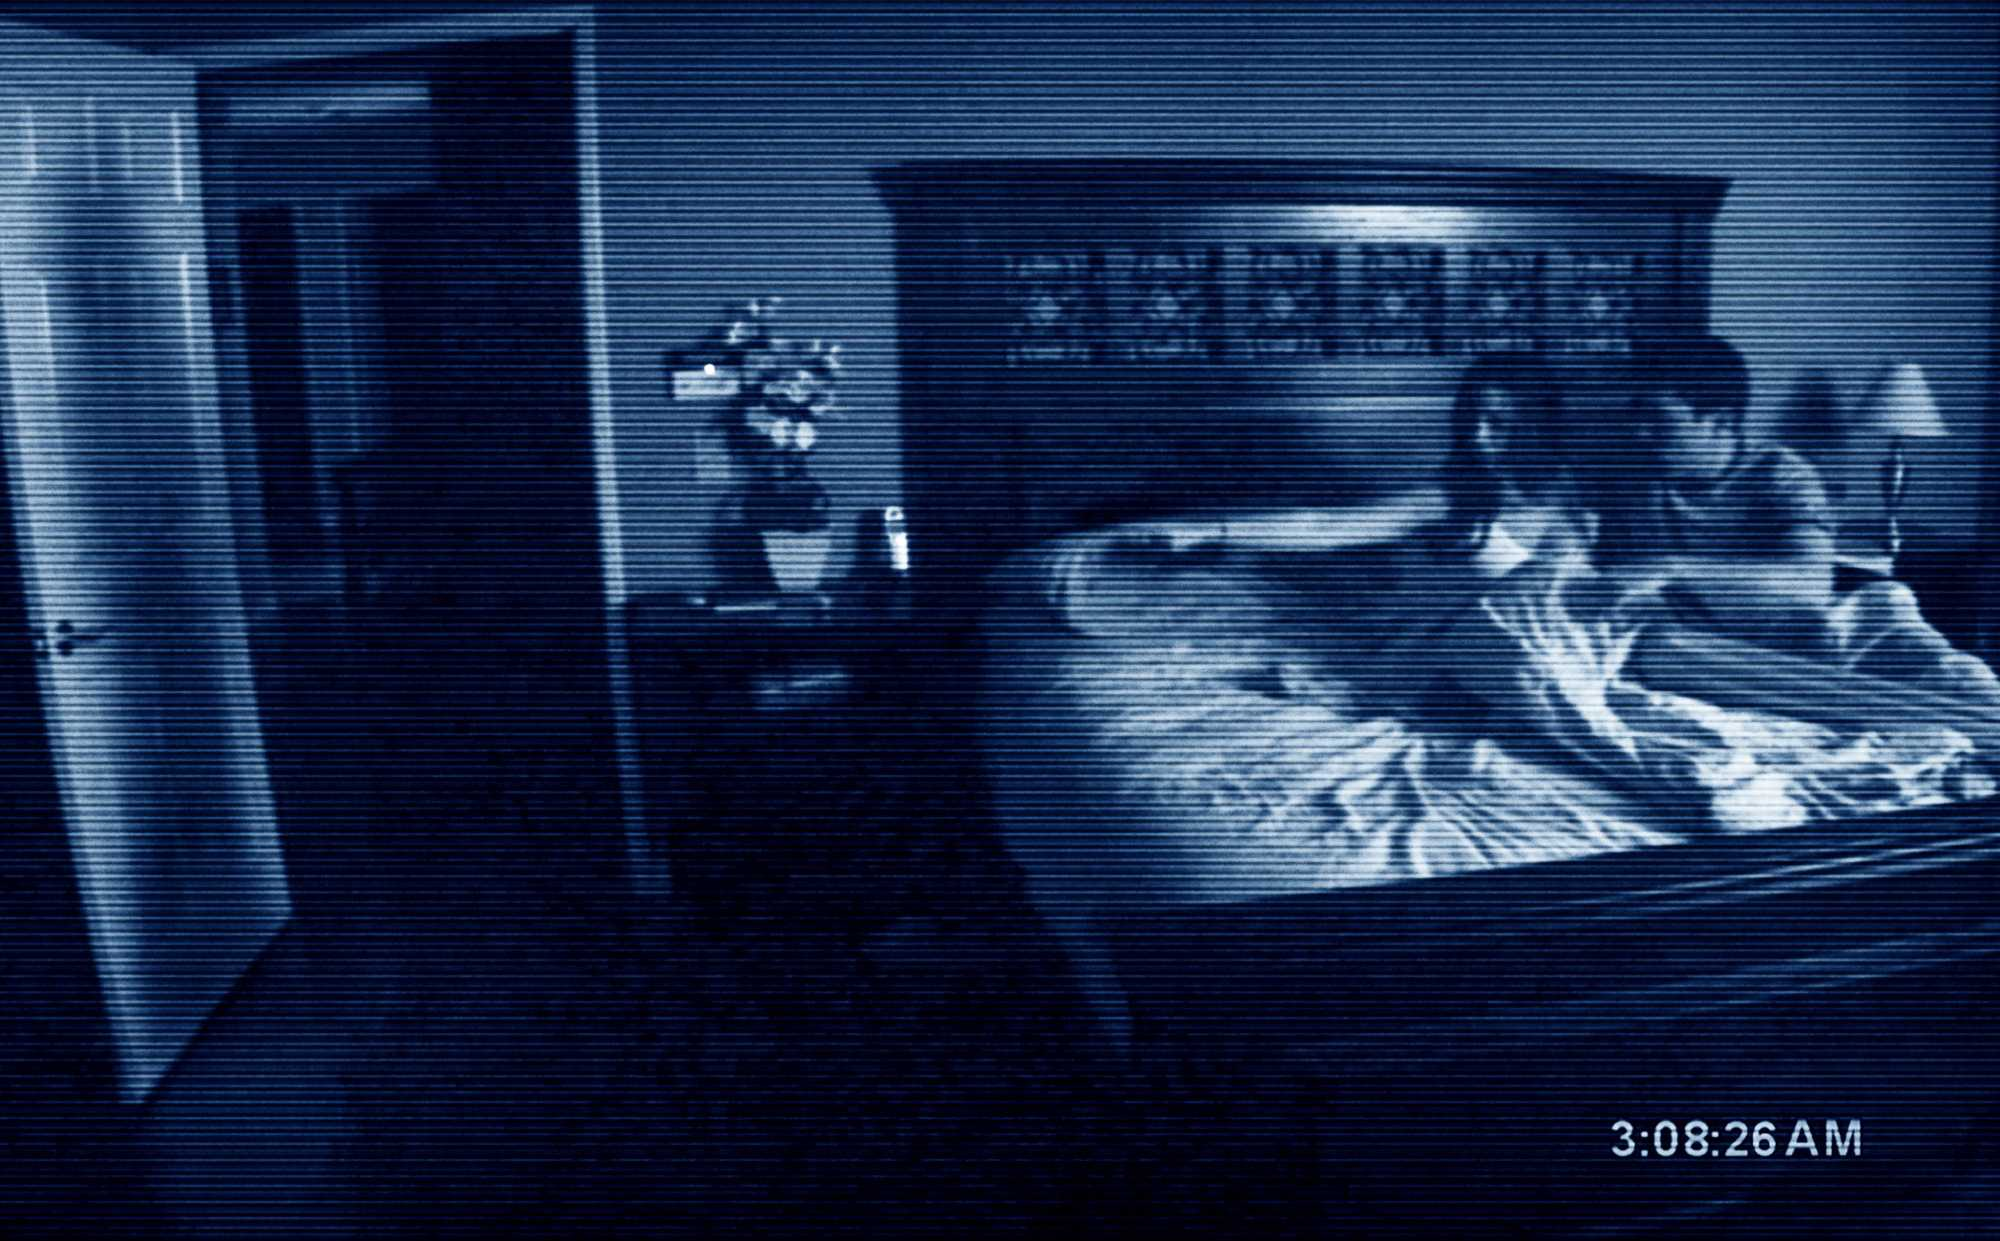 paranormal activity online